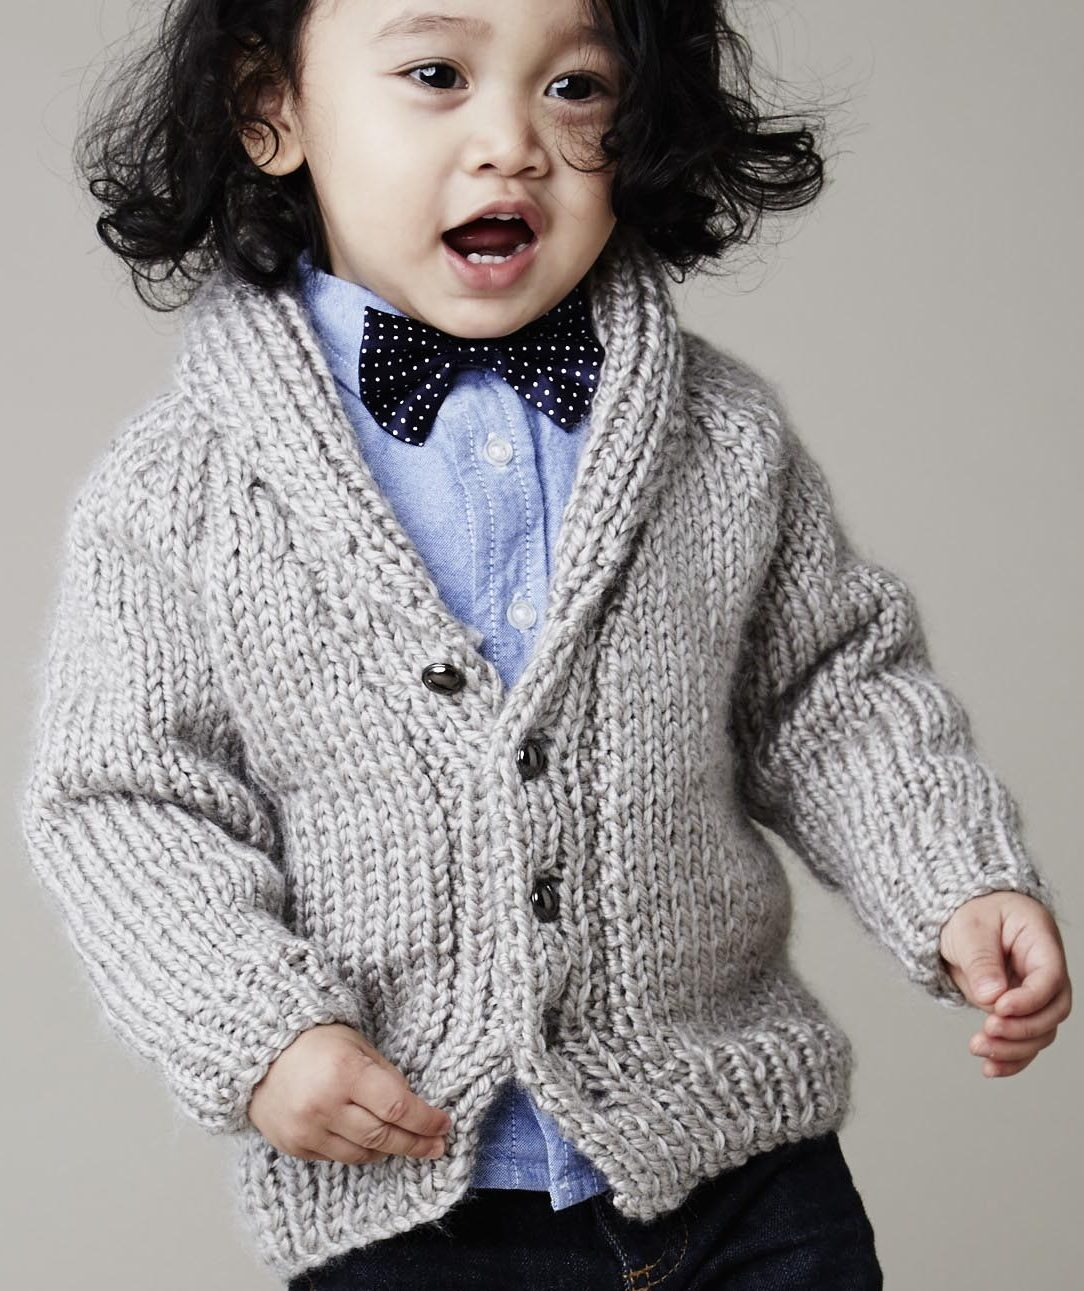 Relatively Baby Cardigan Sweater Knitting Patterns | In the Loop Knitting FK76